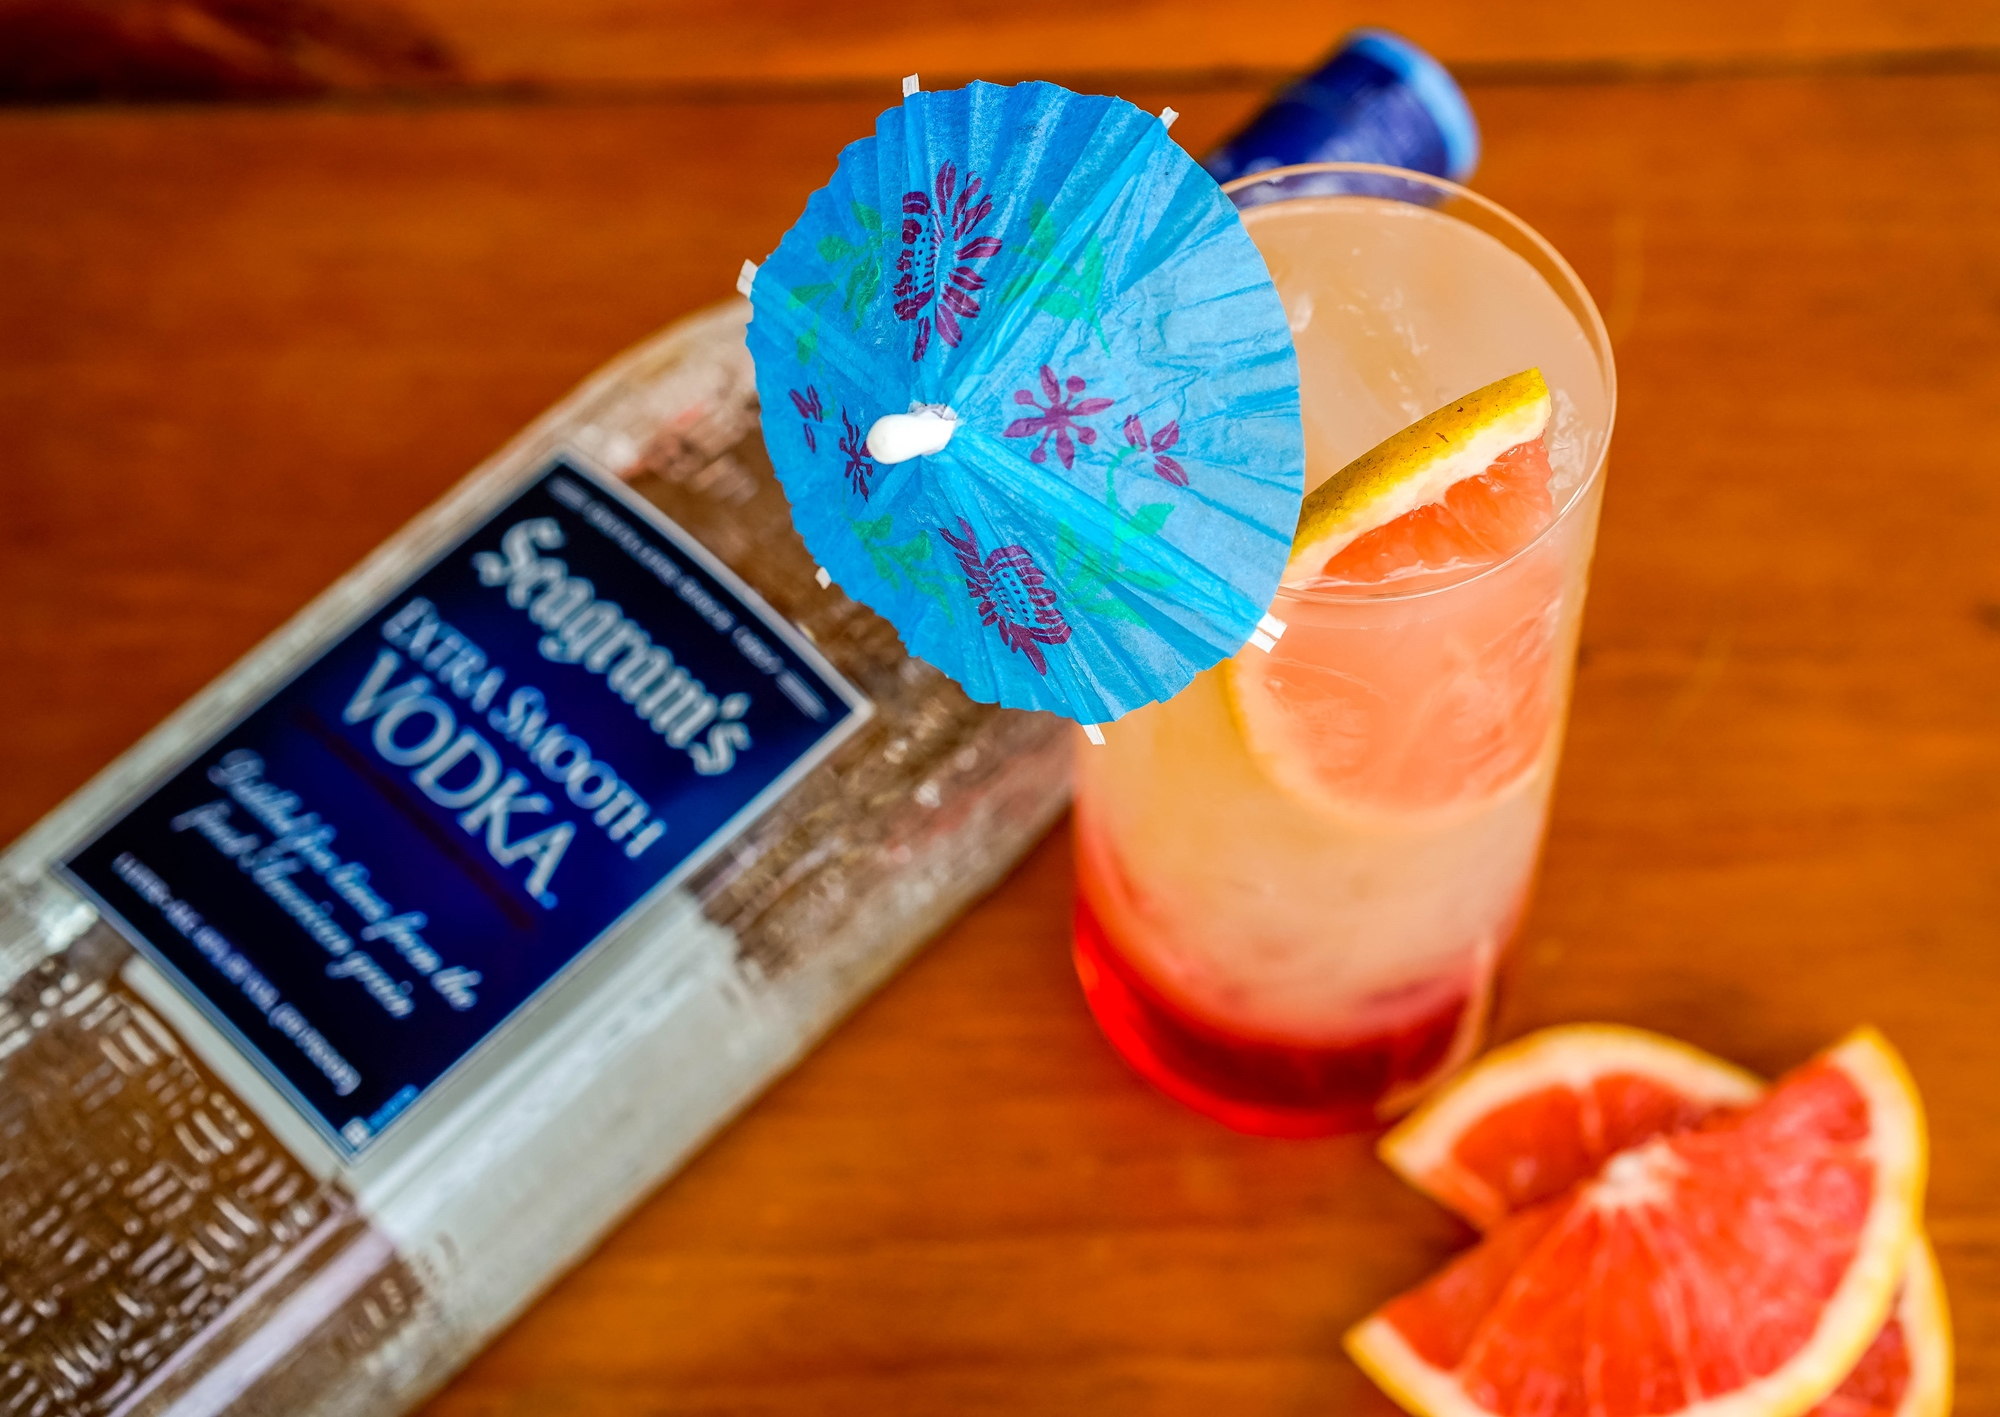 Seagram's Vodka Winter Sunset